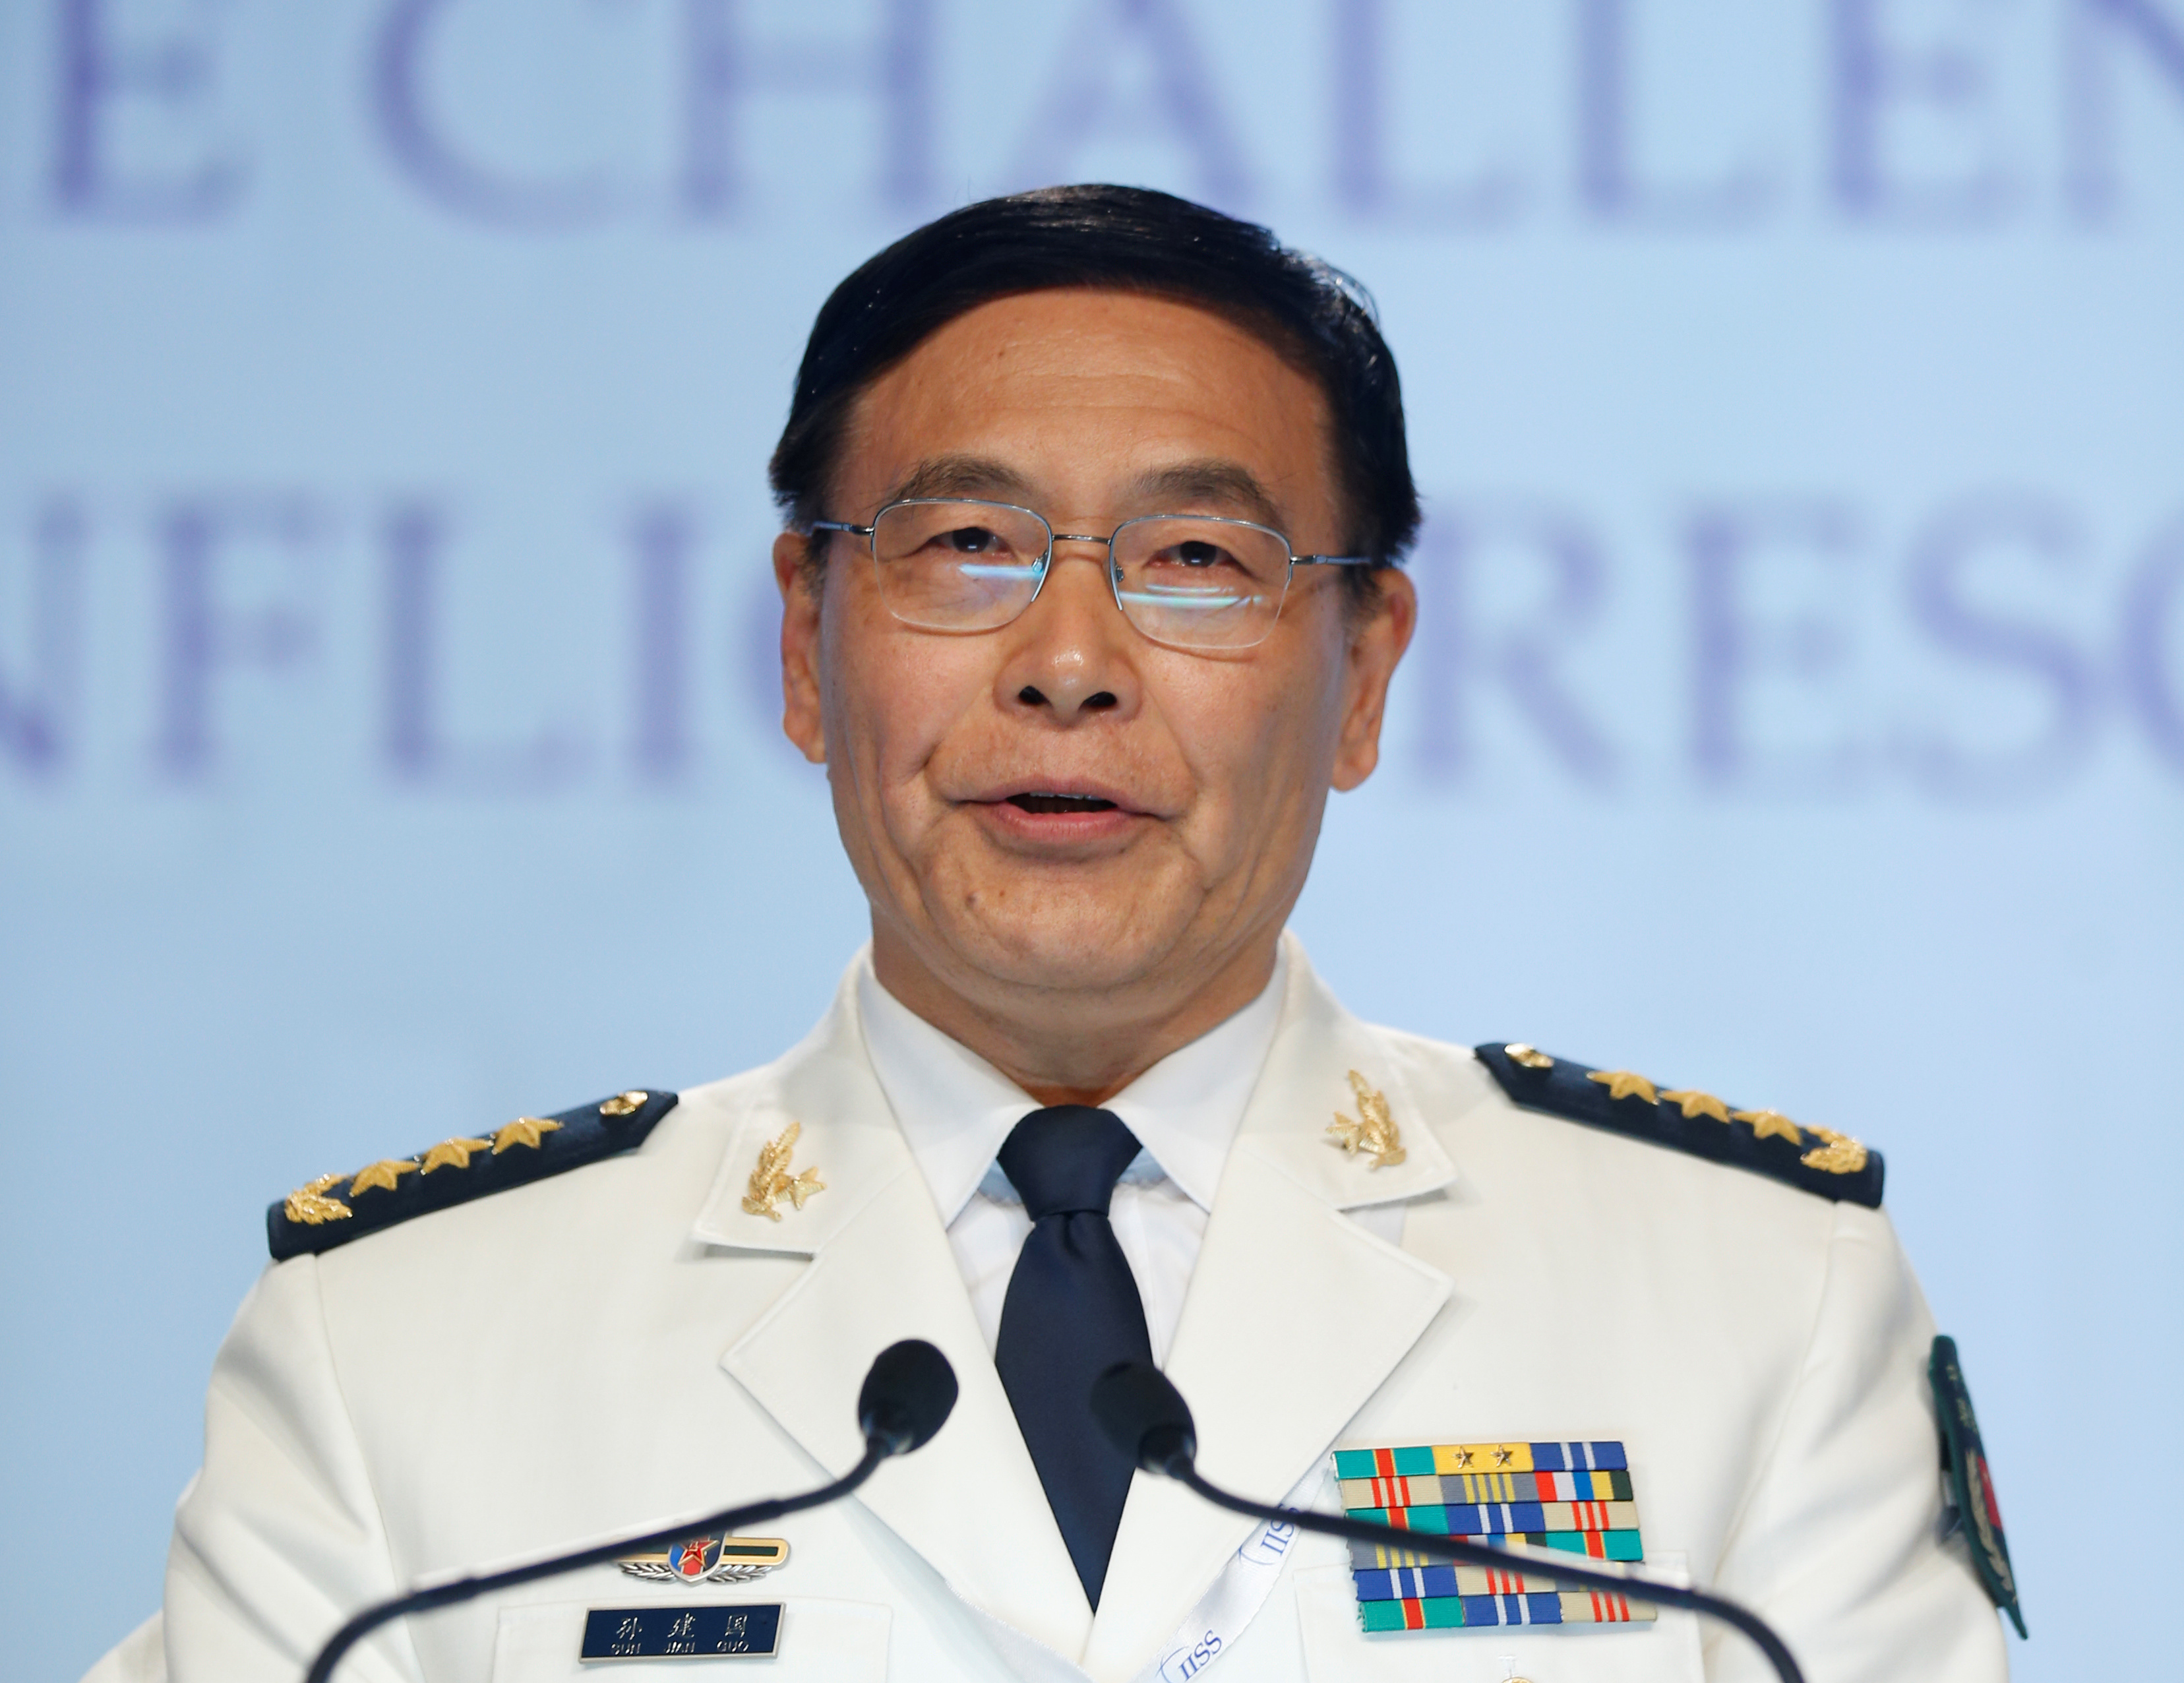 China's Joint Staff Department Deputy Chief Admiral Sun Jianguo speaks at the IISS Shangri-La Dialogue in Singapore June 5, 2016